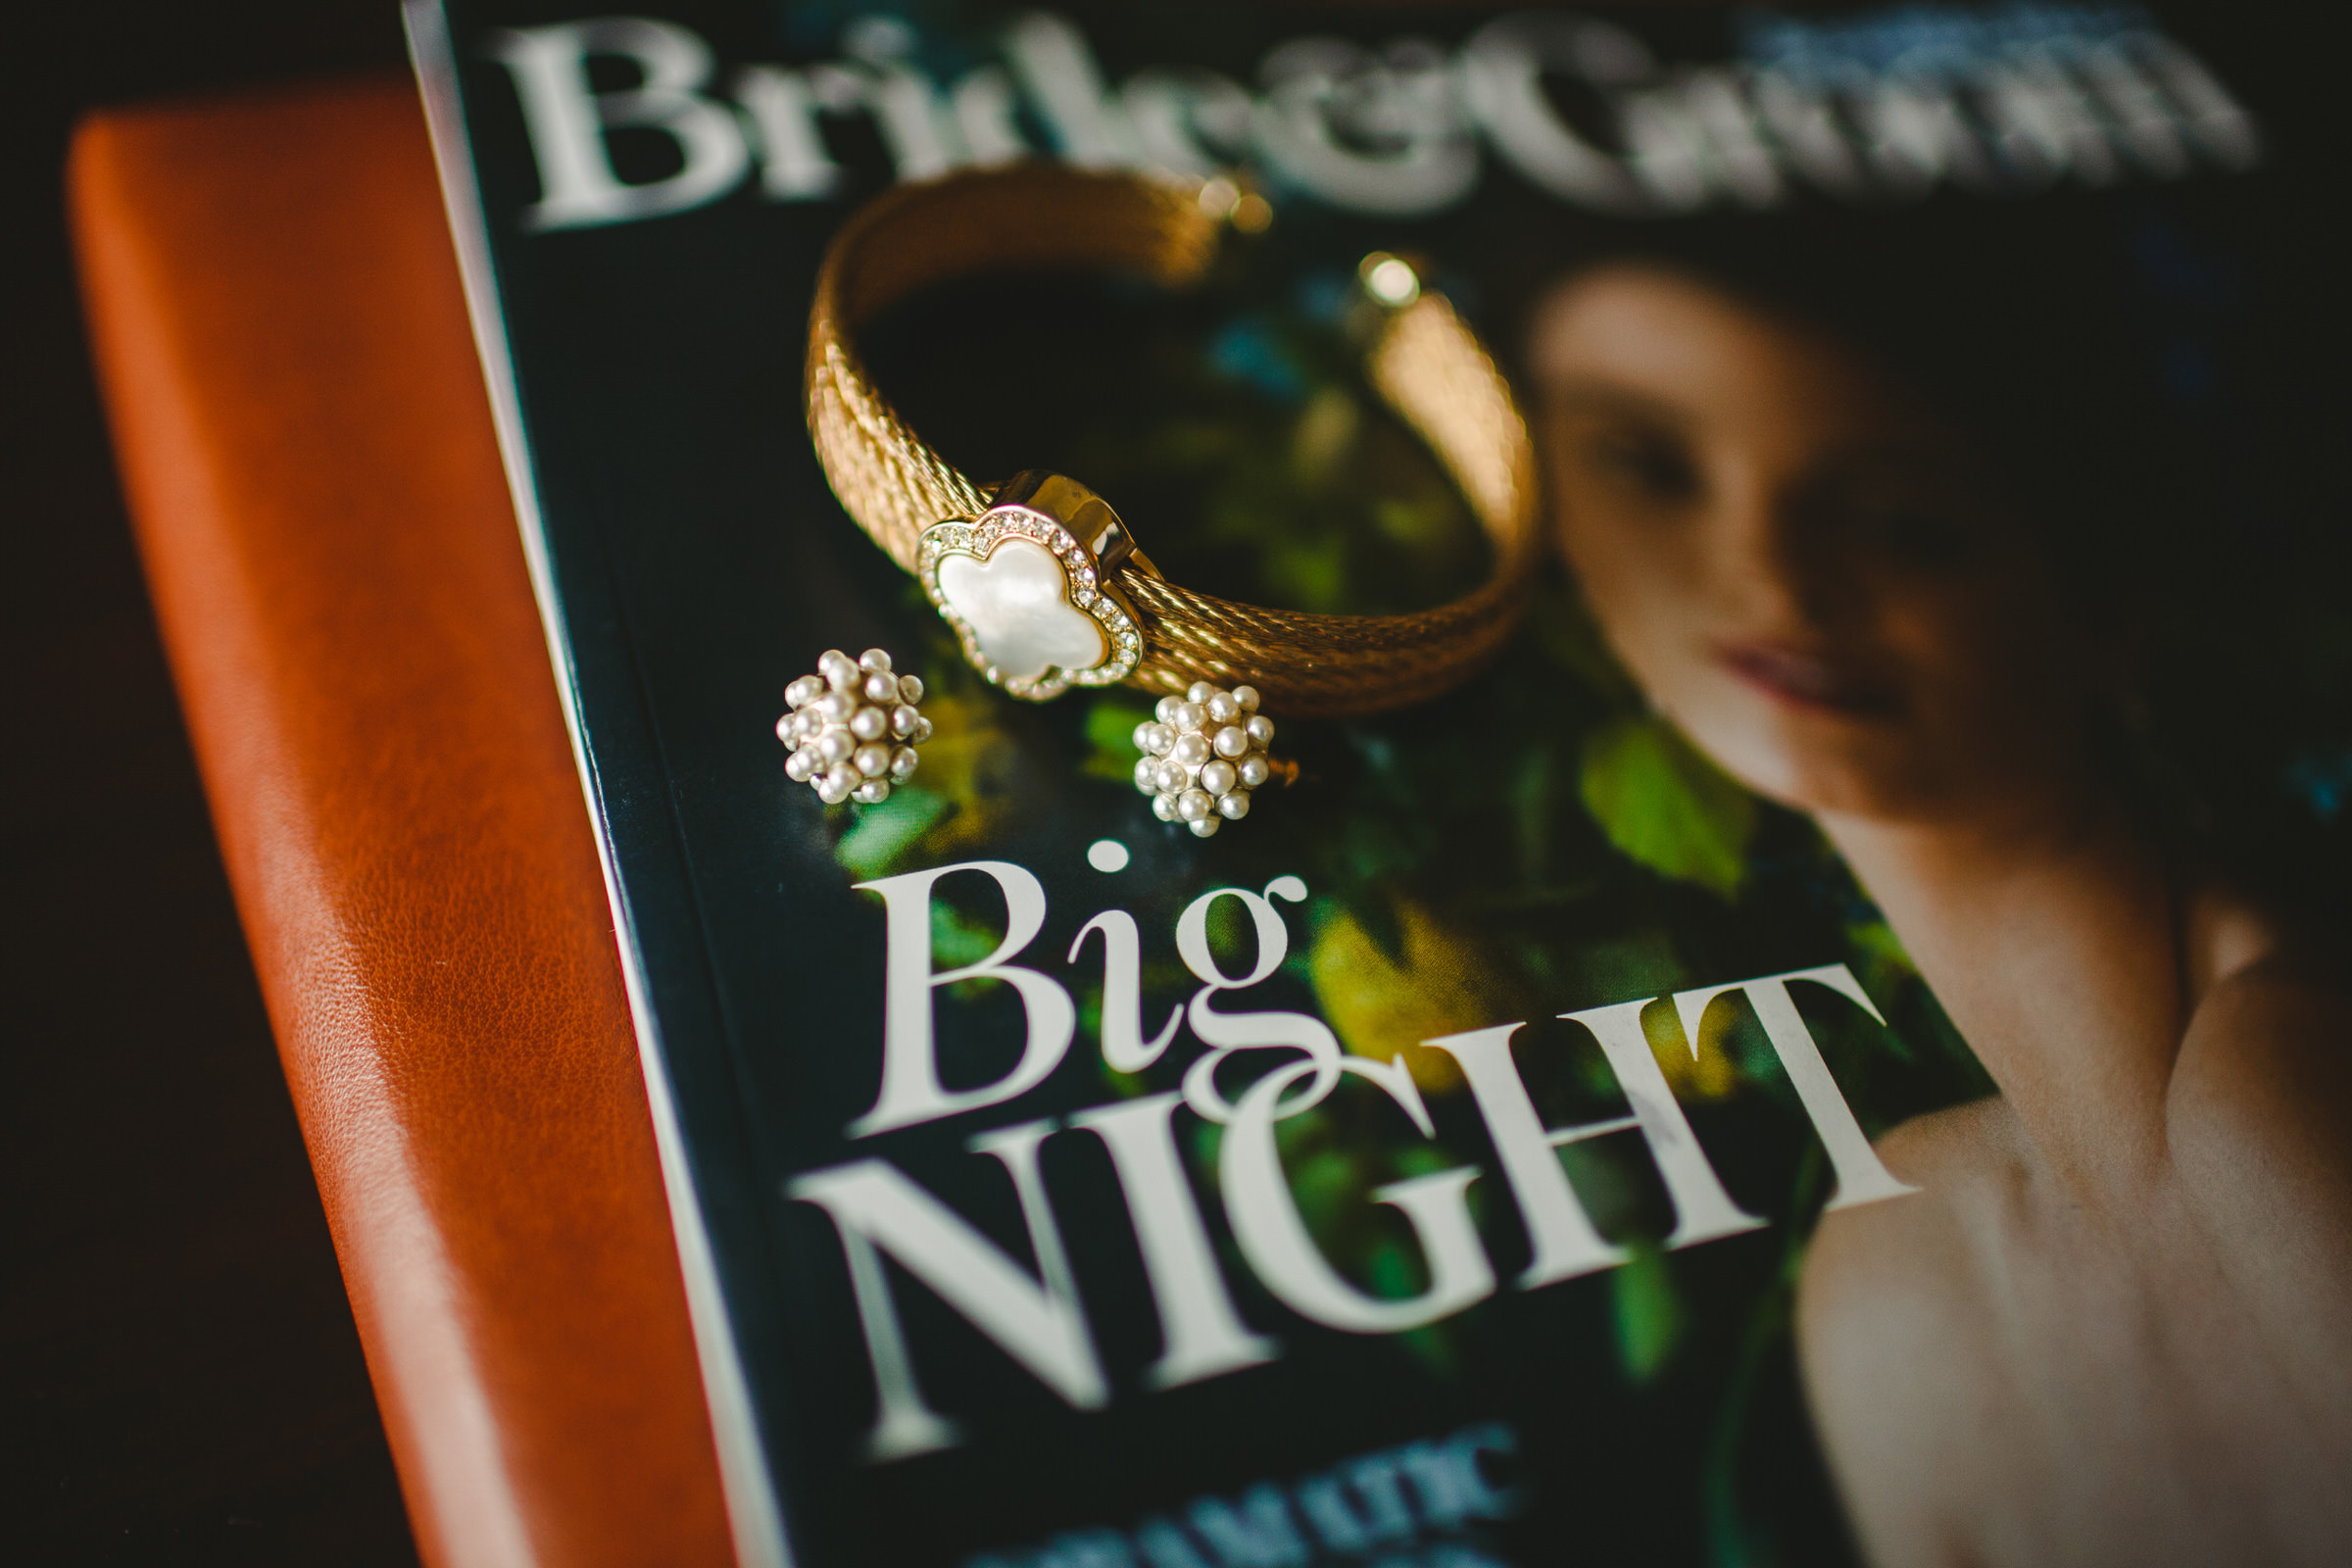 Detail of bracelet and earrings against Big Night book - photo by Satya Curcio Photography